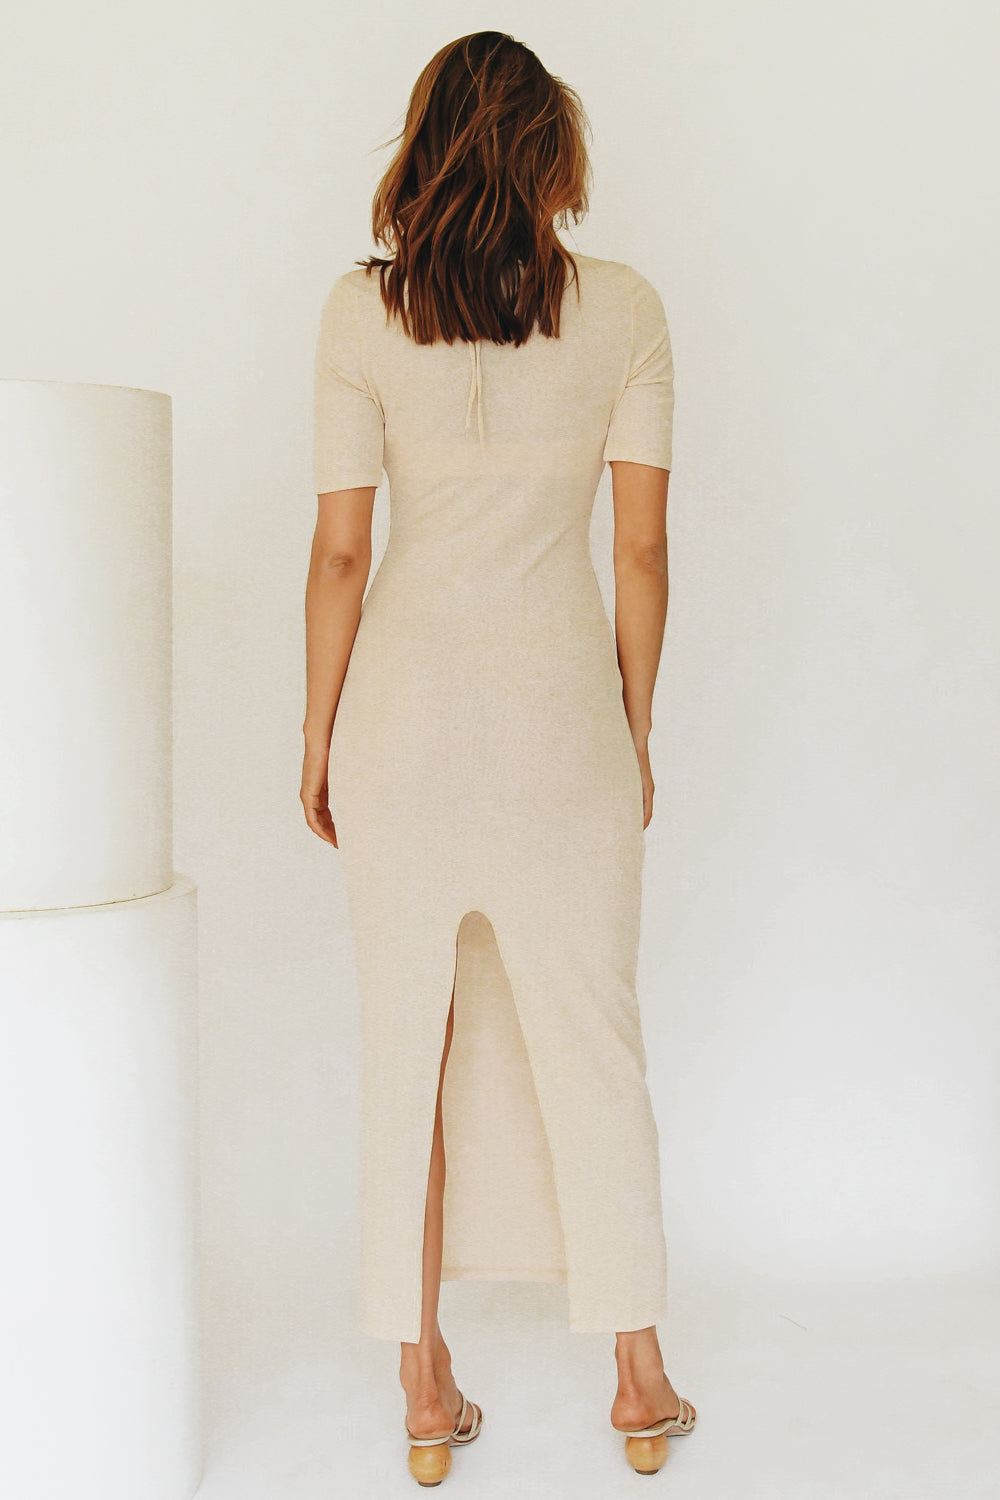 Summer Issue Knit Midi Dress // Natural